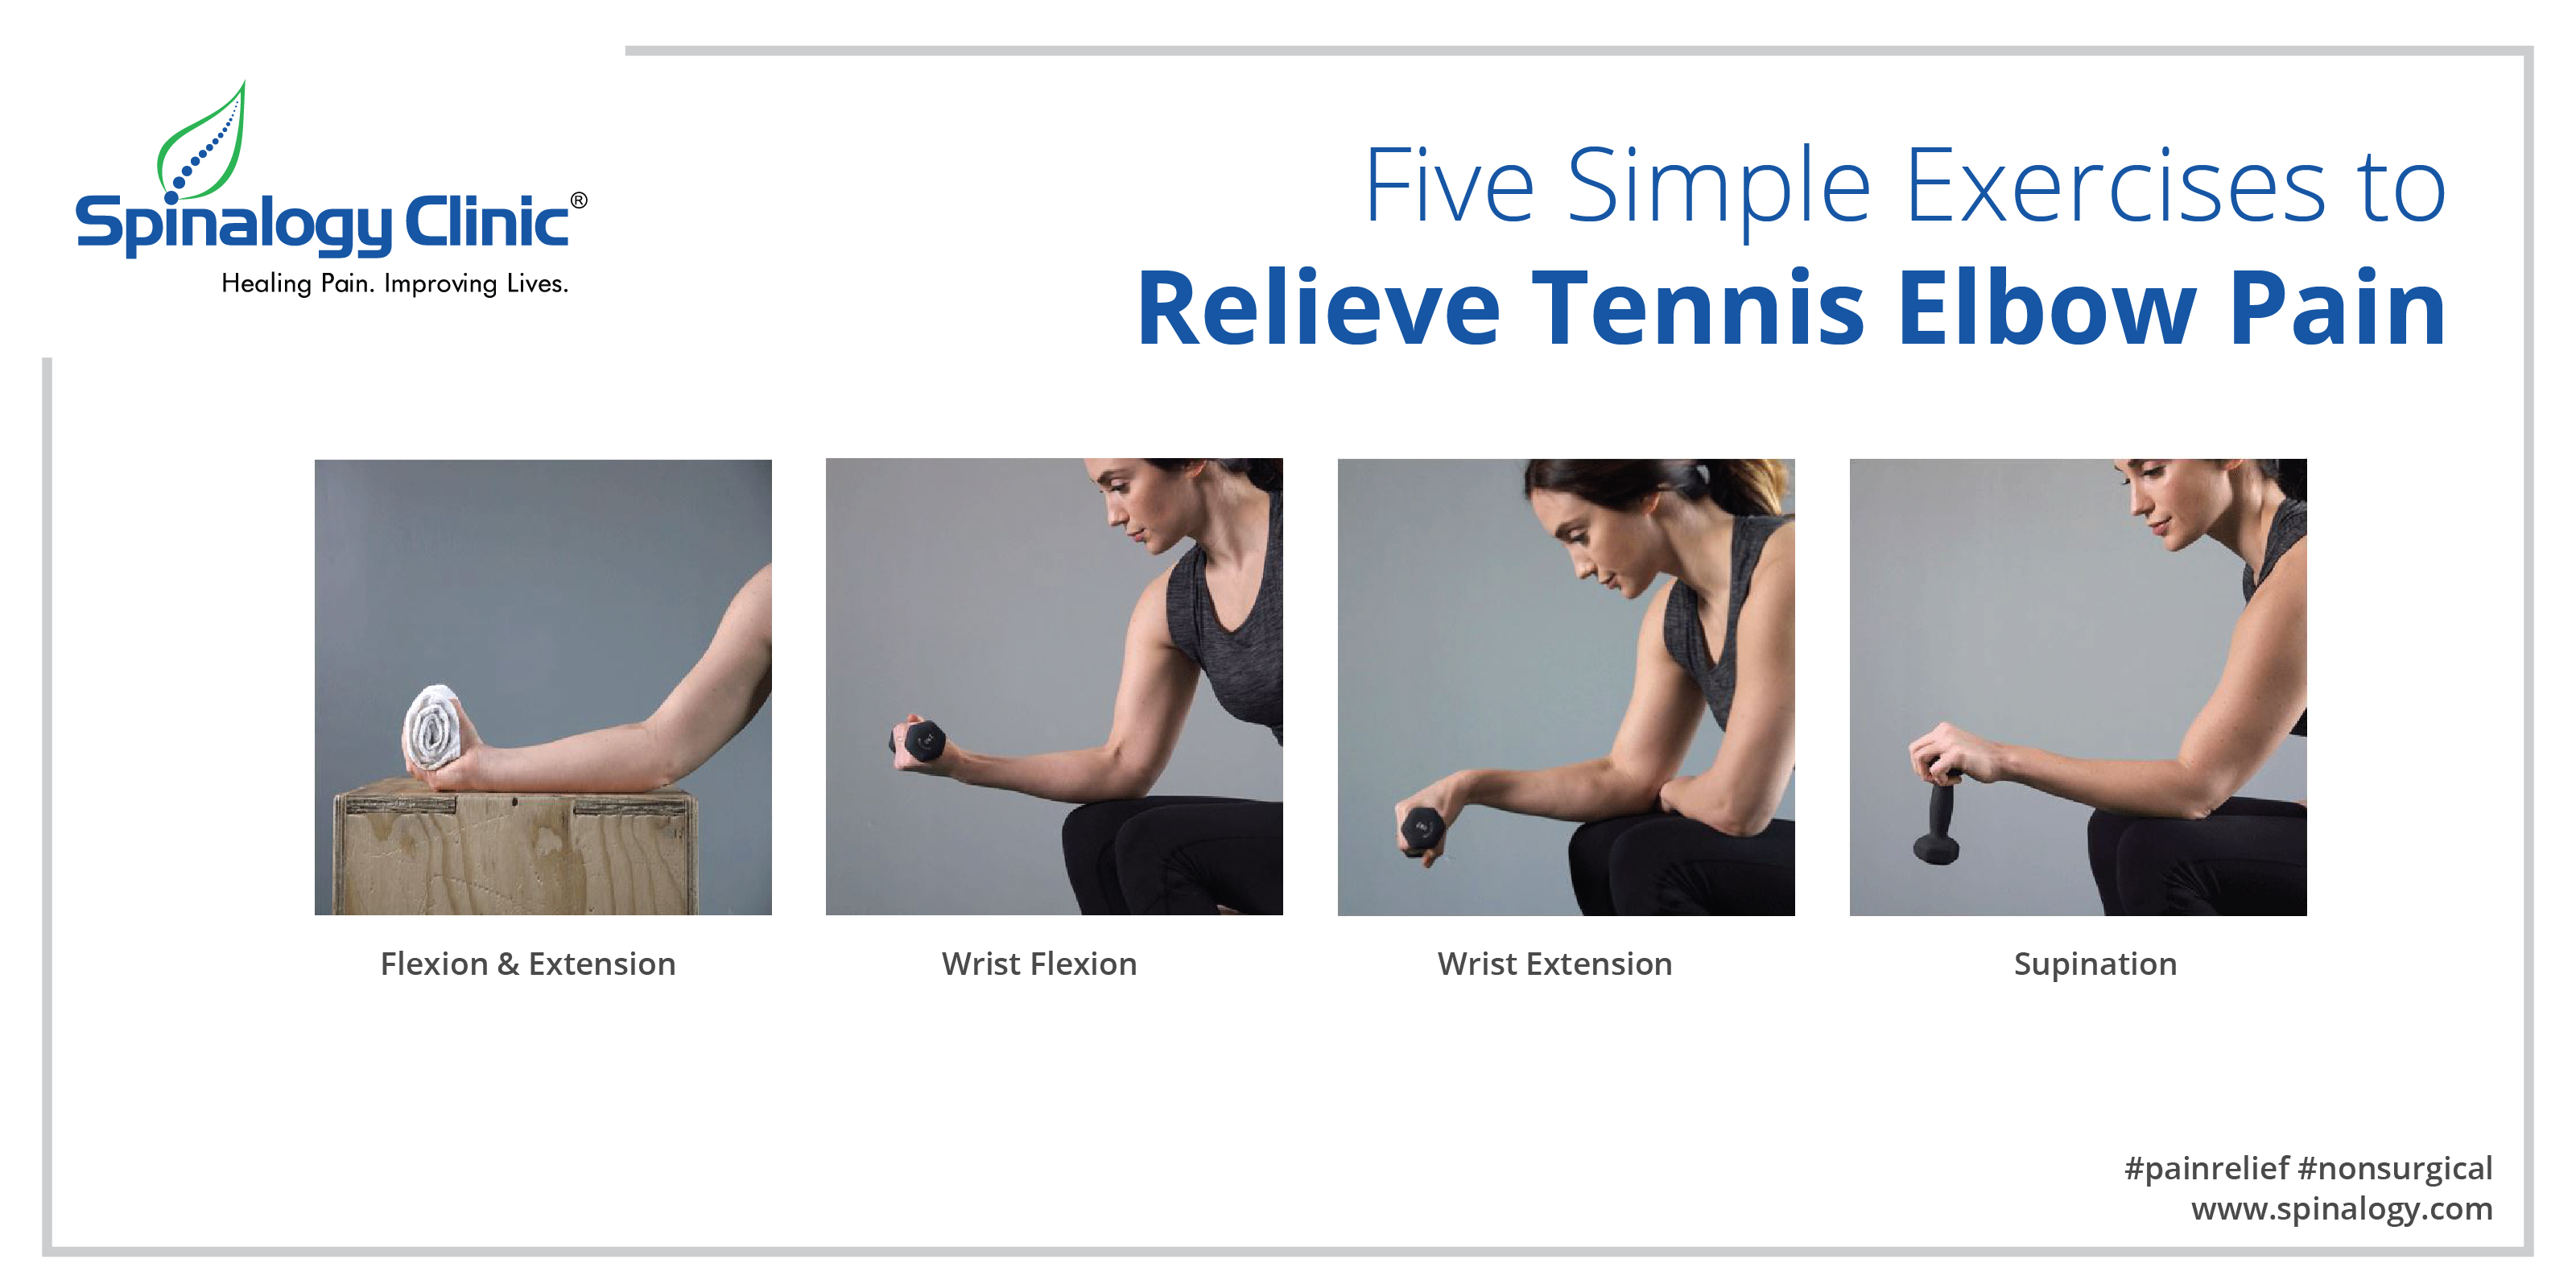 Five Simple Exercises To Relieve Tennis Elbow Pain